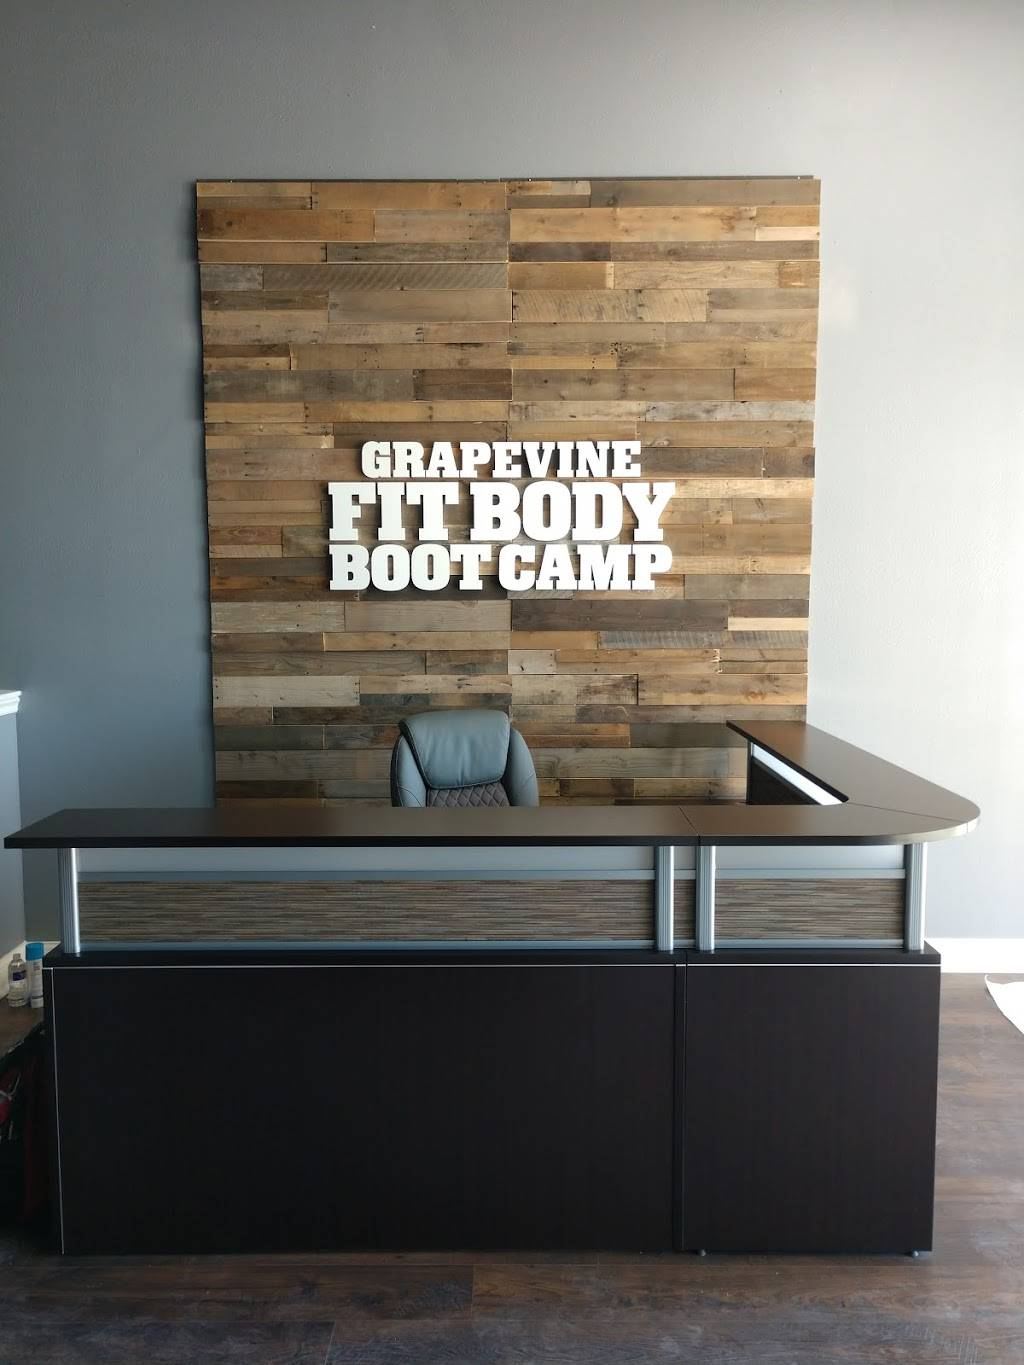 Grapevine Fit Body Boot Camp - gym    Photo 5 of 6   Address: 2030 Glade Rd Suite 200, Grapevine, TX 76051, USA   Phone: (817) 554-2012